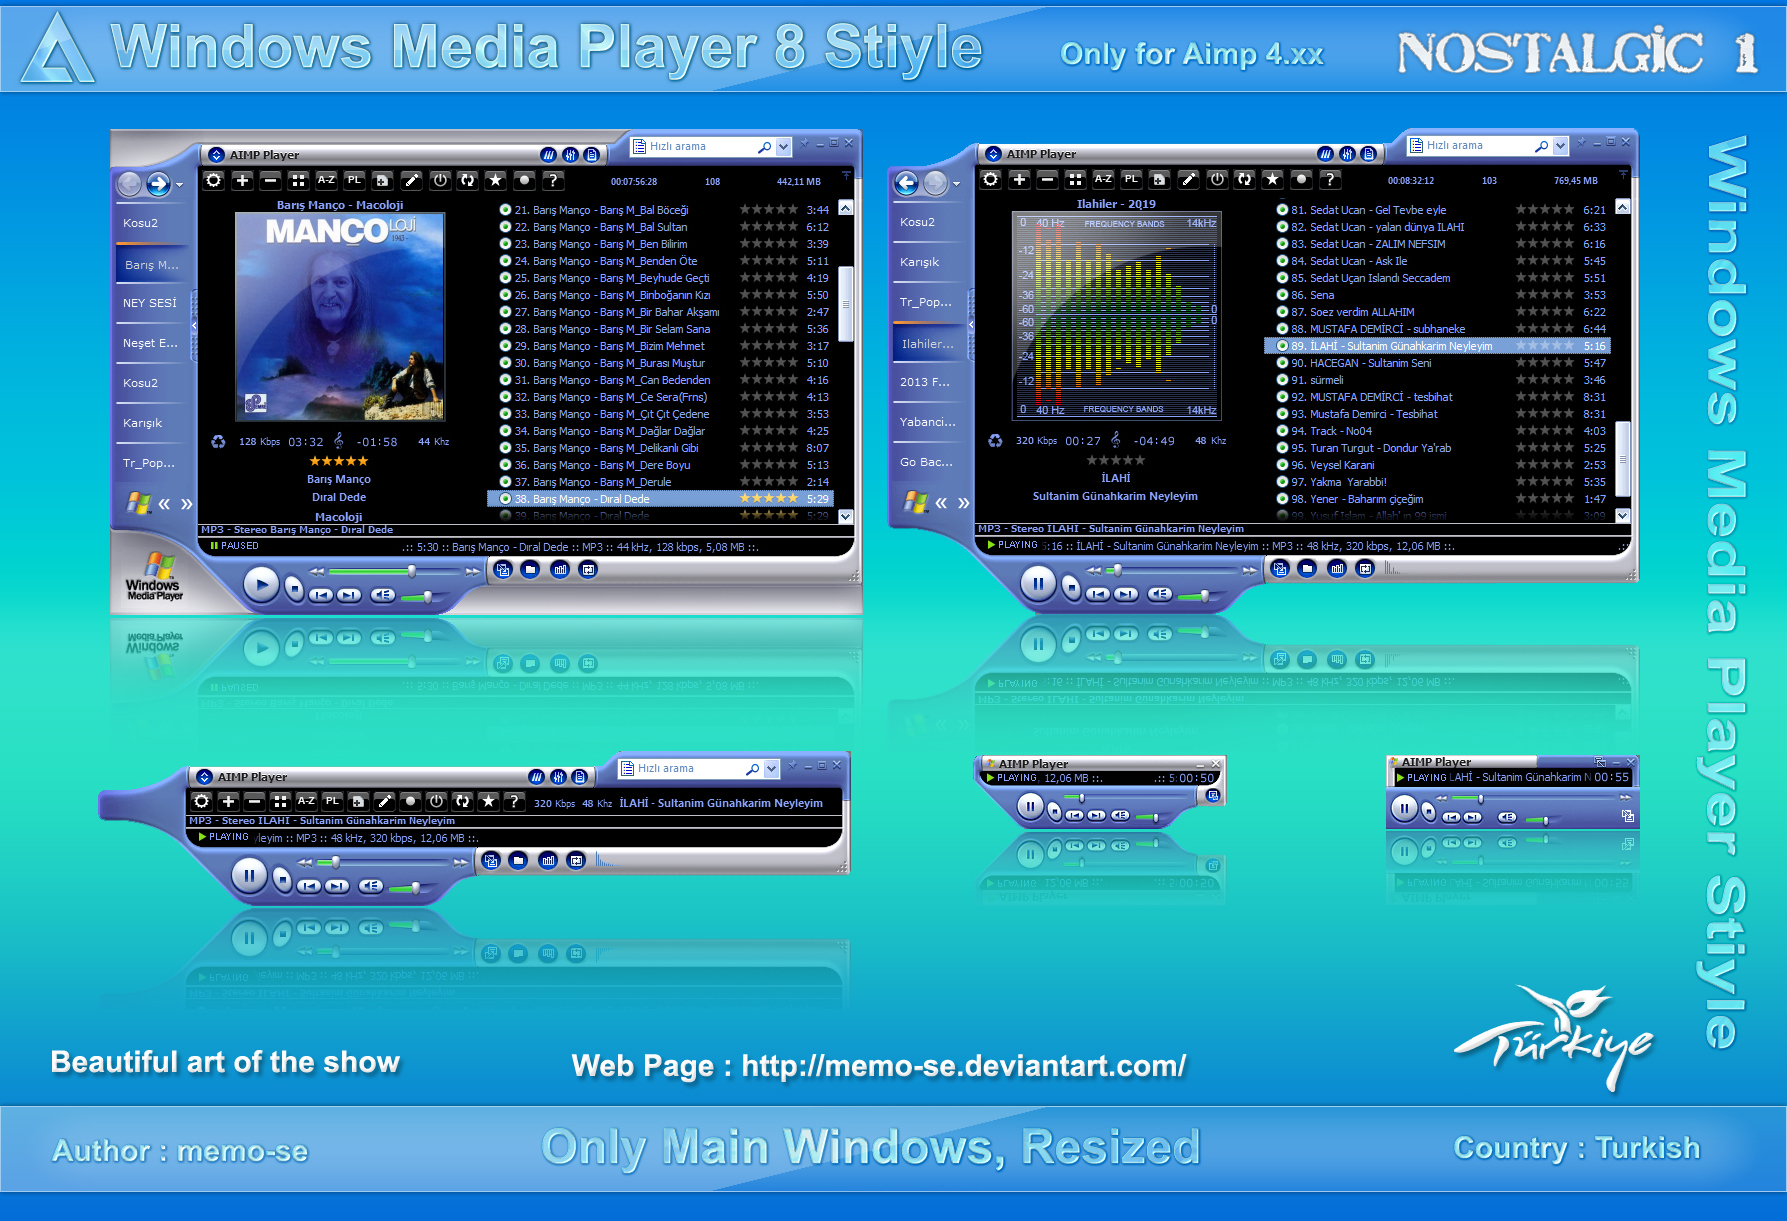 Windows Media Player 8 For Aimp Player